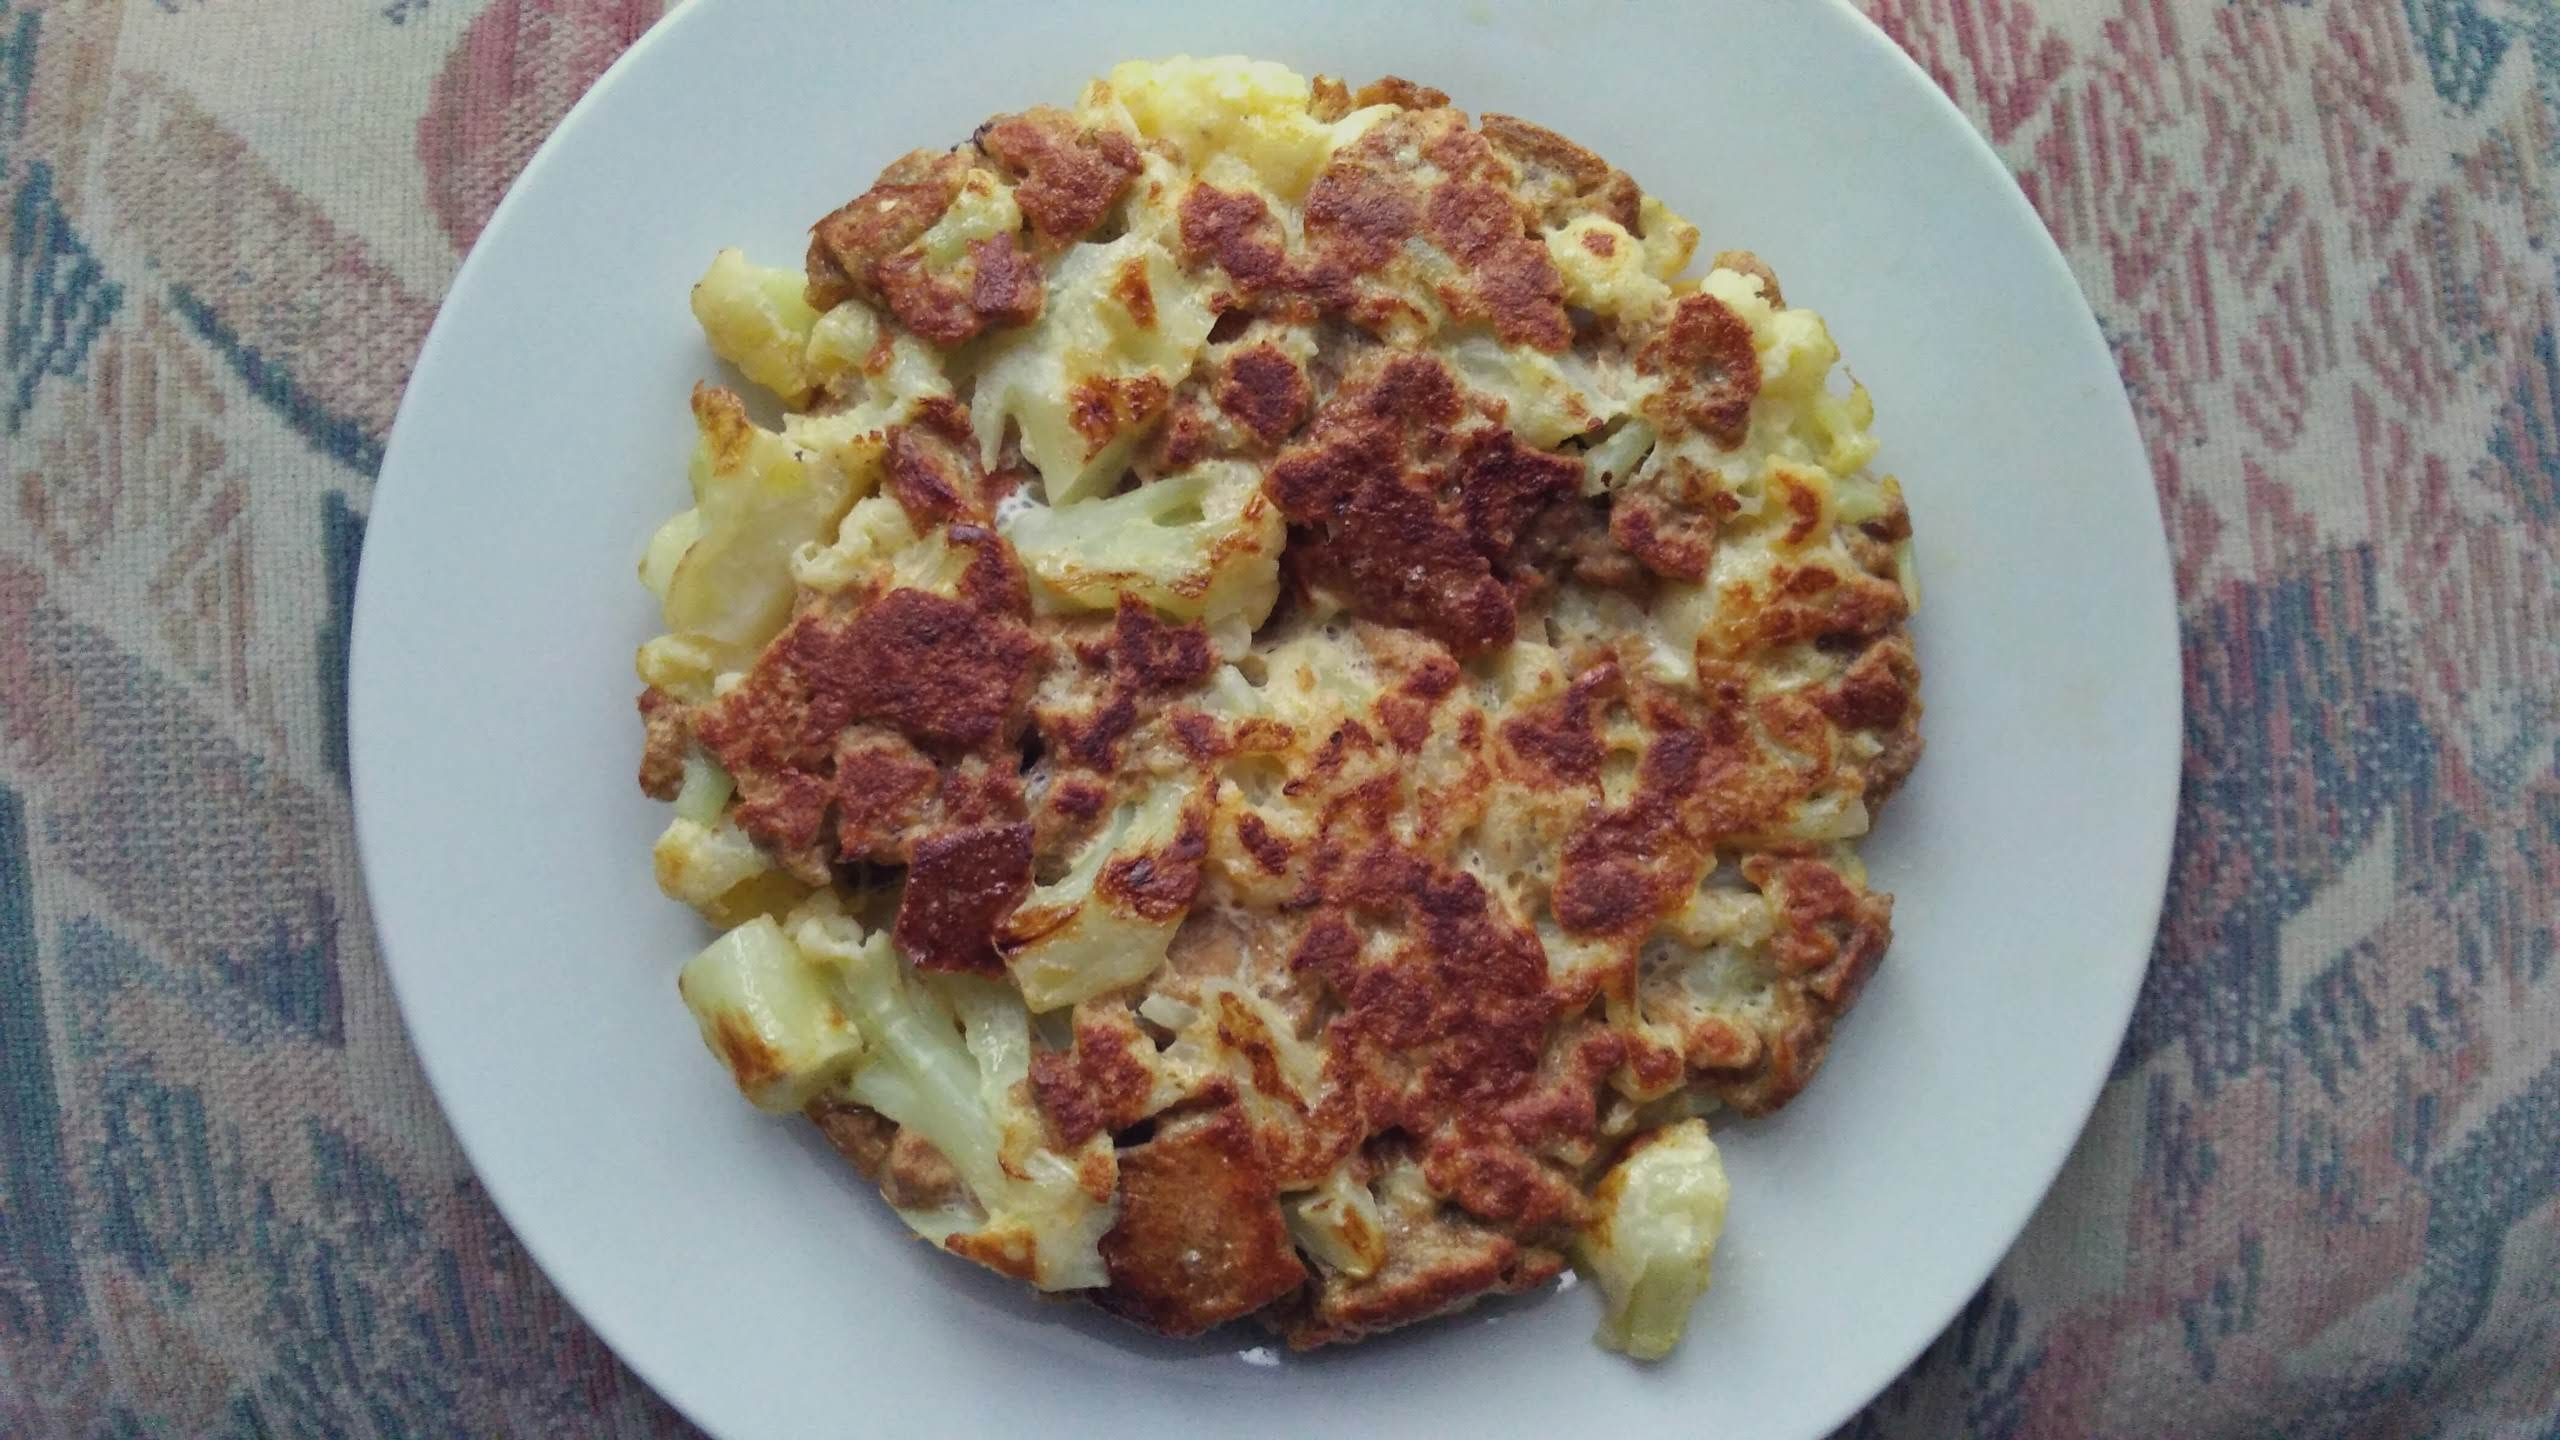 Cauliflower and bread omelette